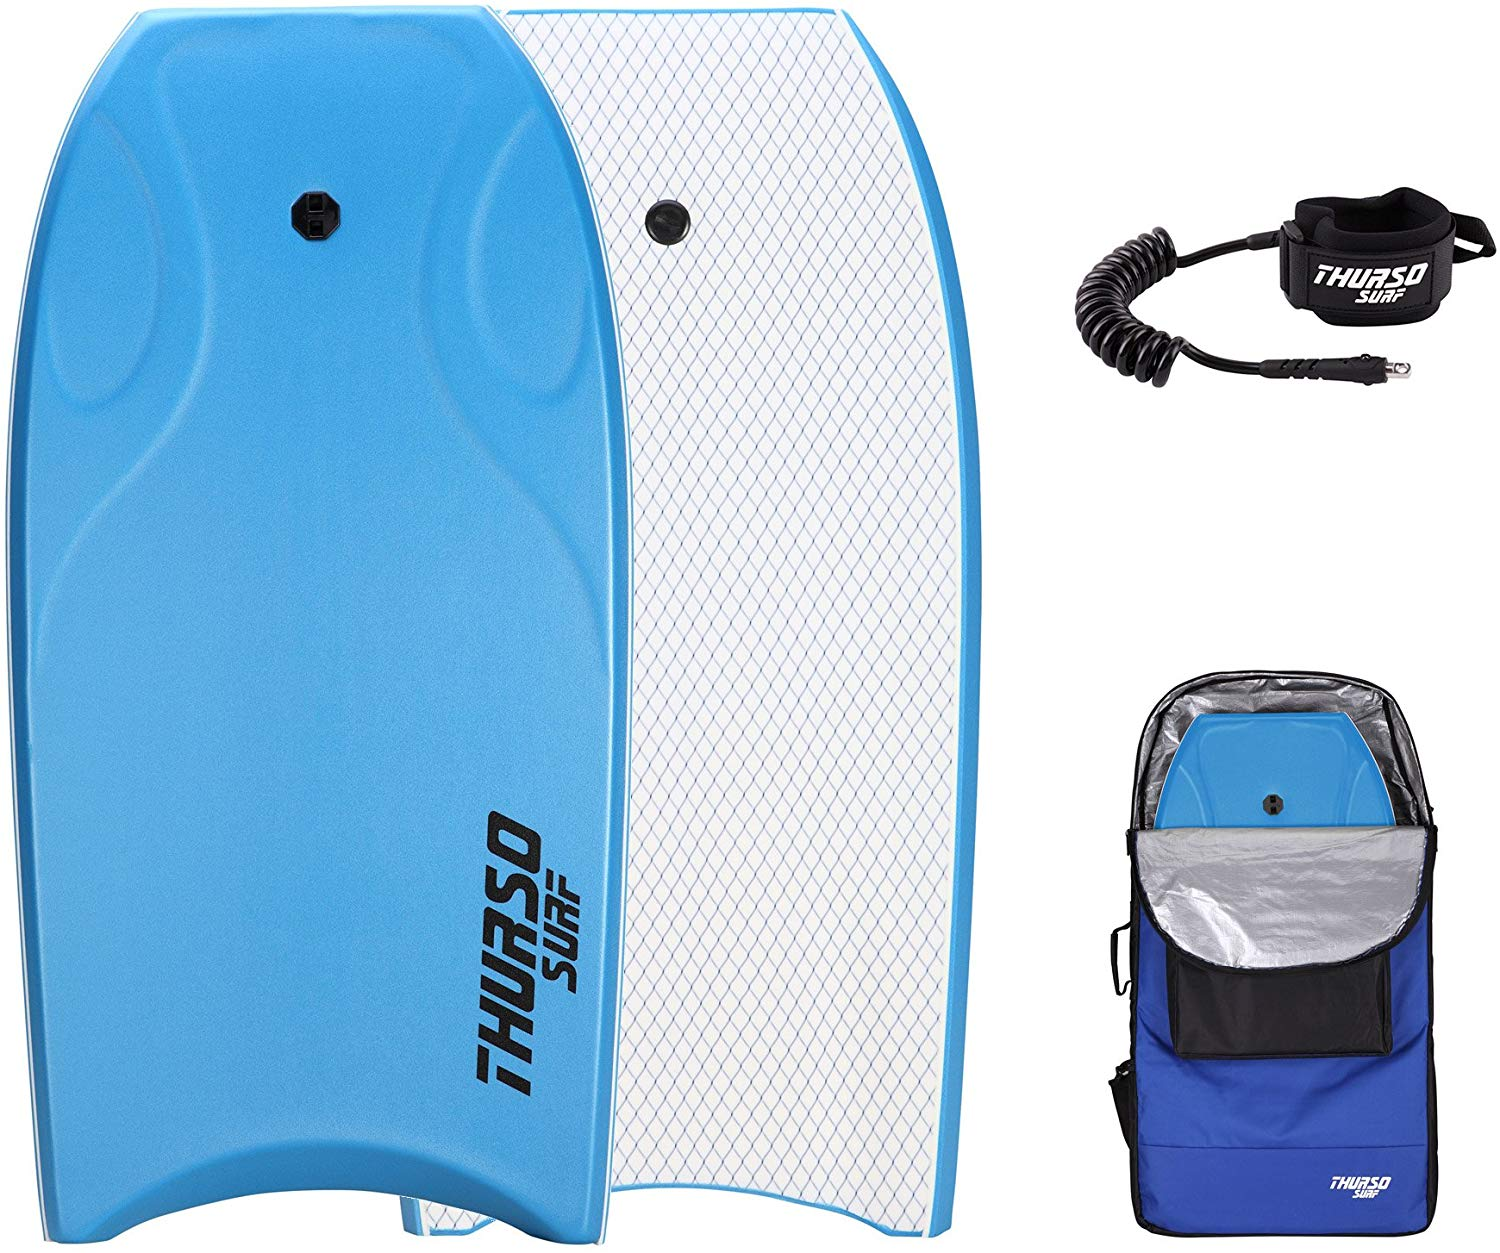 THURSO SURF Lightning 42 inch Bodyboard Package PE Core IXPE Deck HDPE Slick Bottom Durable Lightweight Includes Double Stainless Steel Swivels Leash and LUX Bodyboard Bag